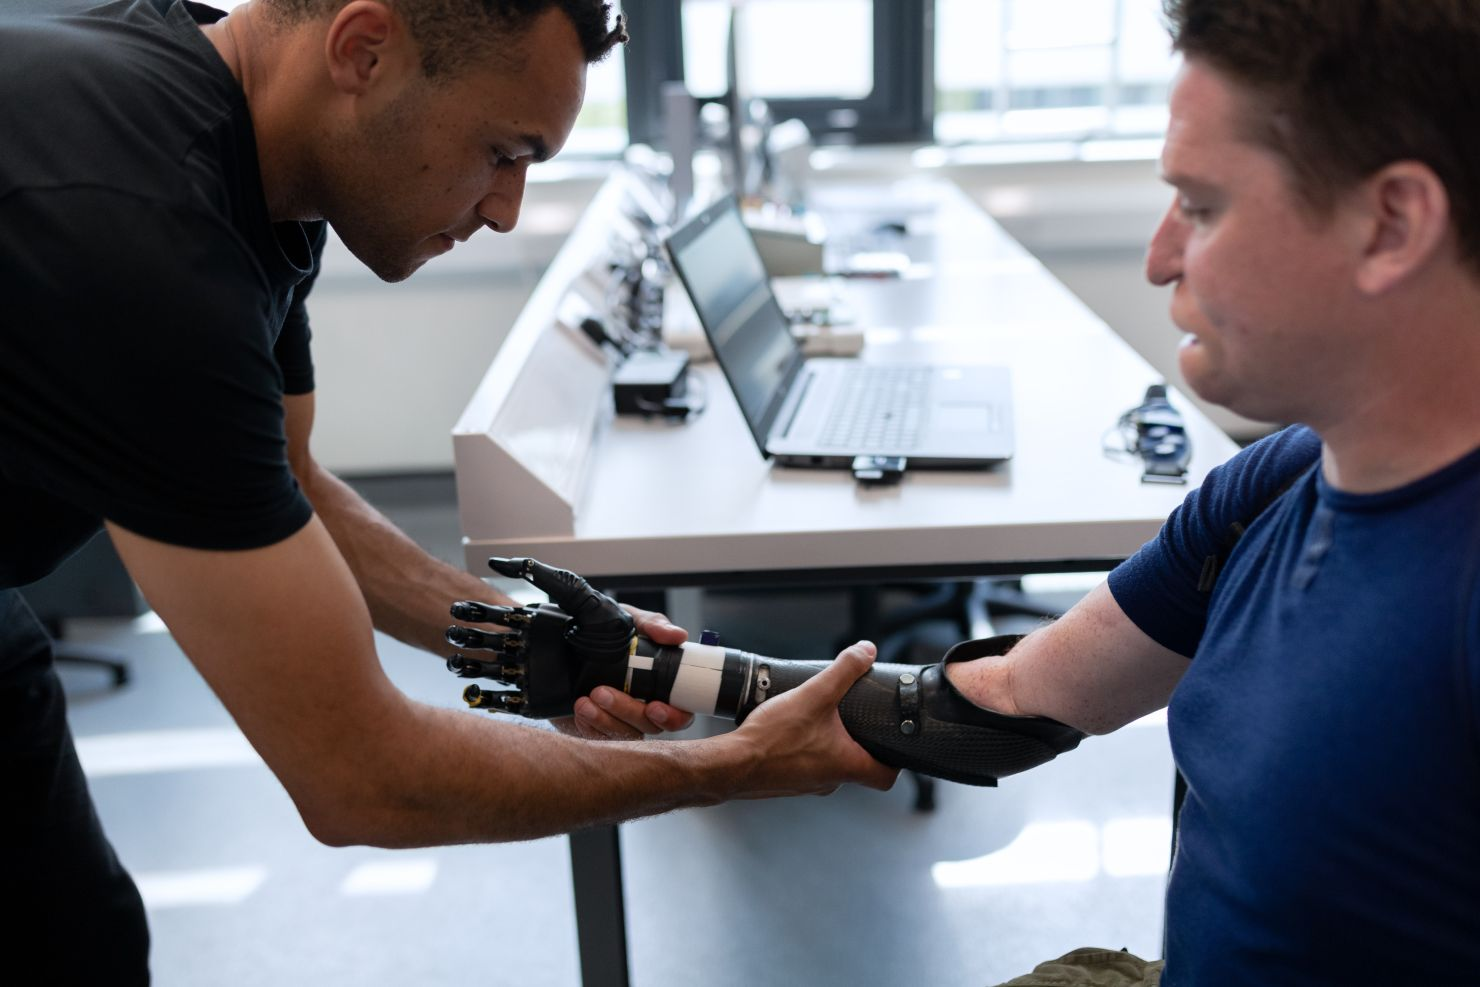 Man gets prosthetic after common motorcycle accident injuries